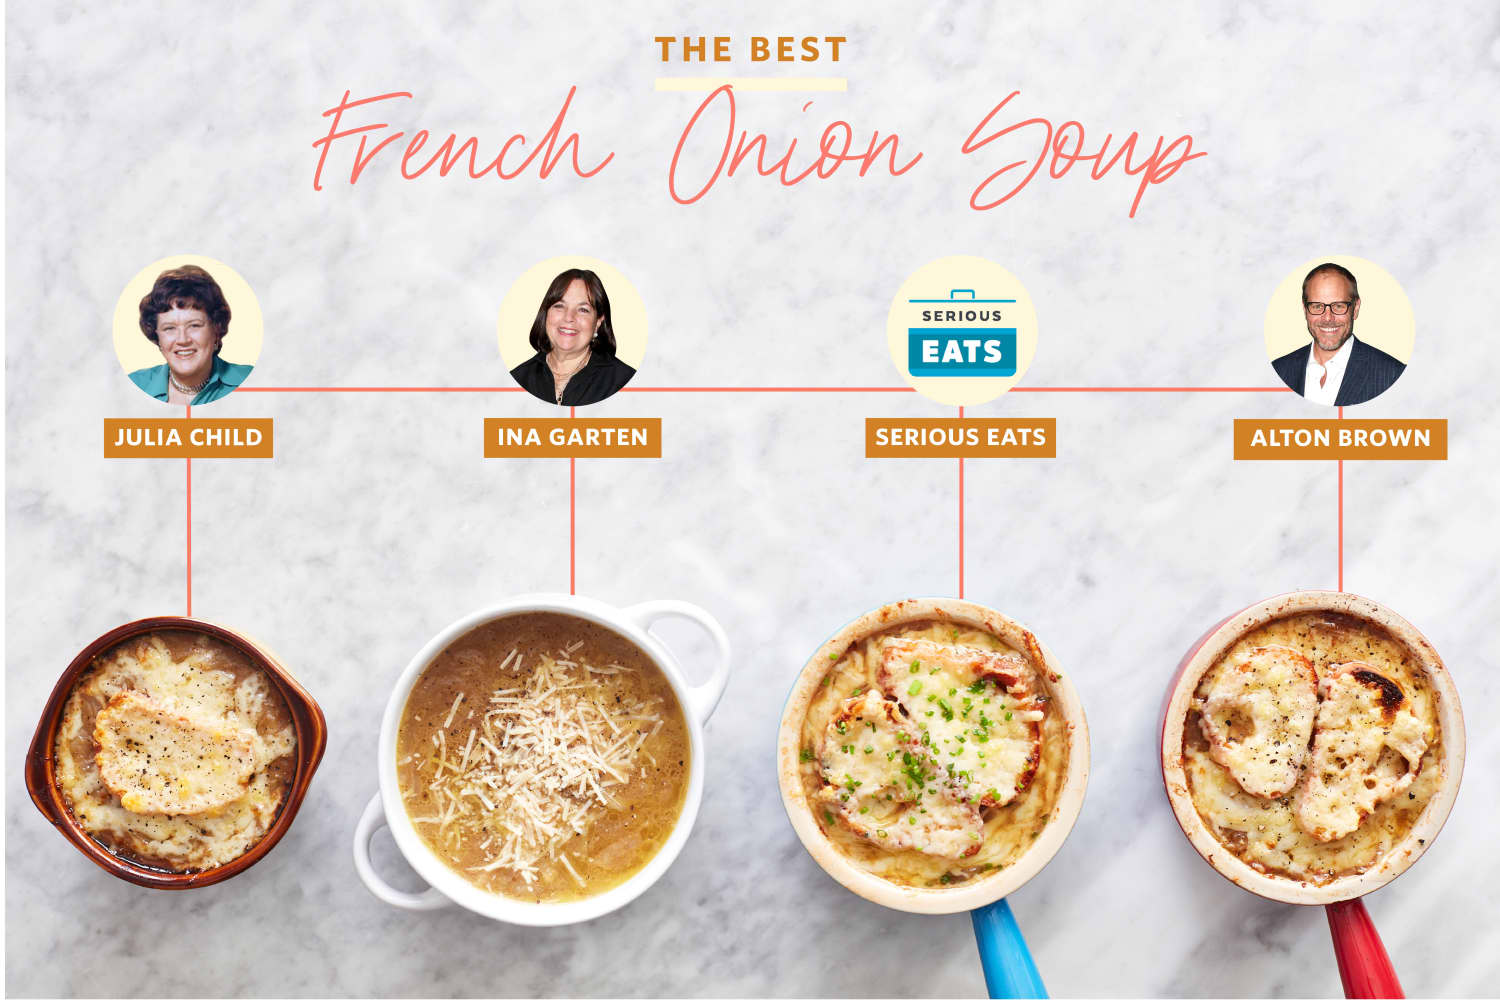 We Tested 4 Famous French Onion Soup Recipes and Found a Clear Winner